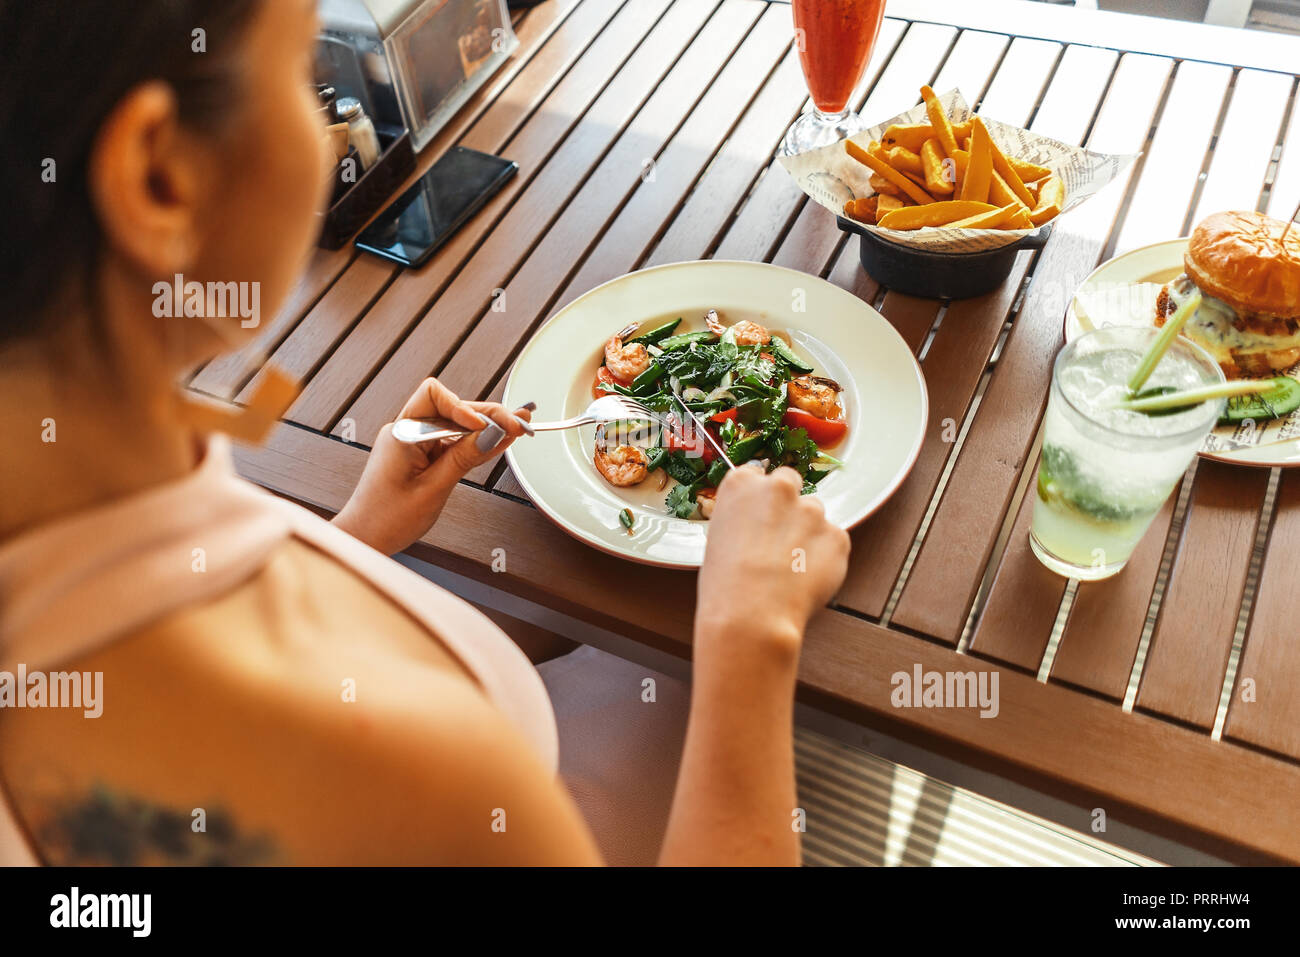 Close up of young attractive woman eating salad at street cafe. - Stock Image